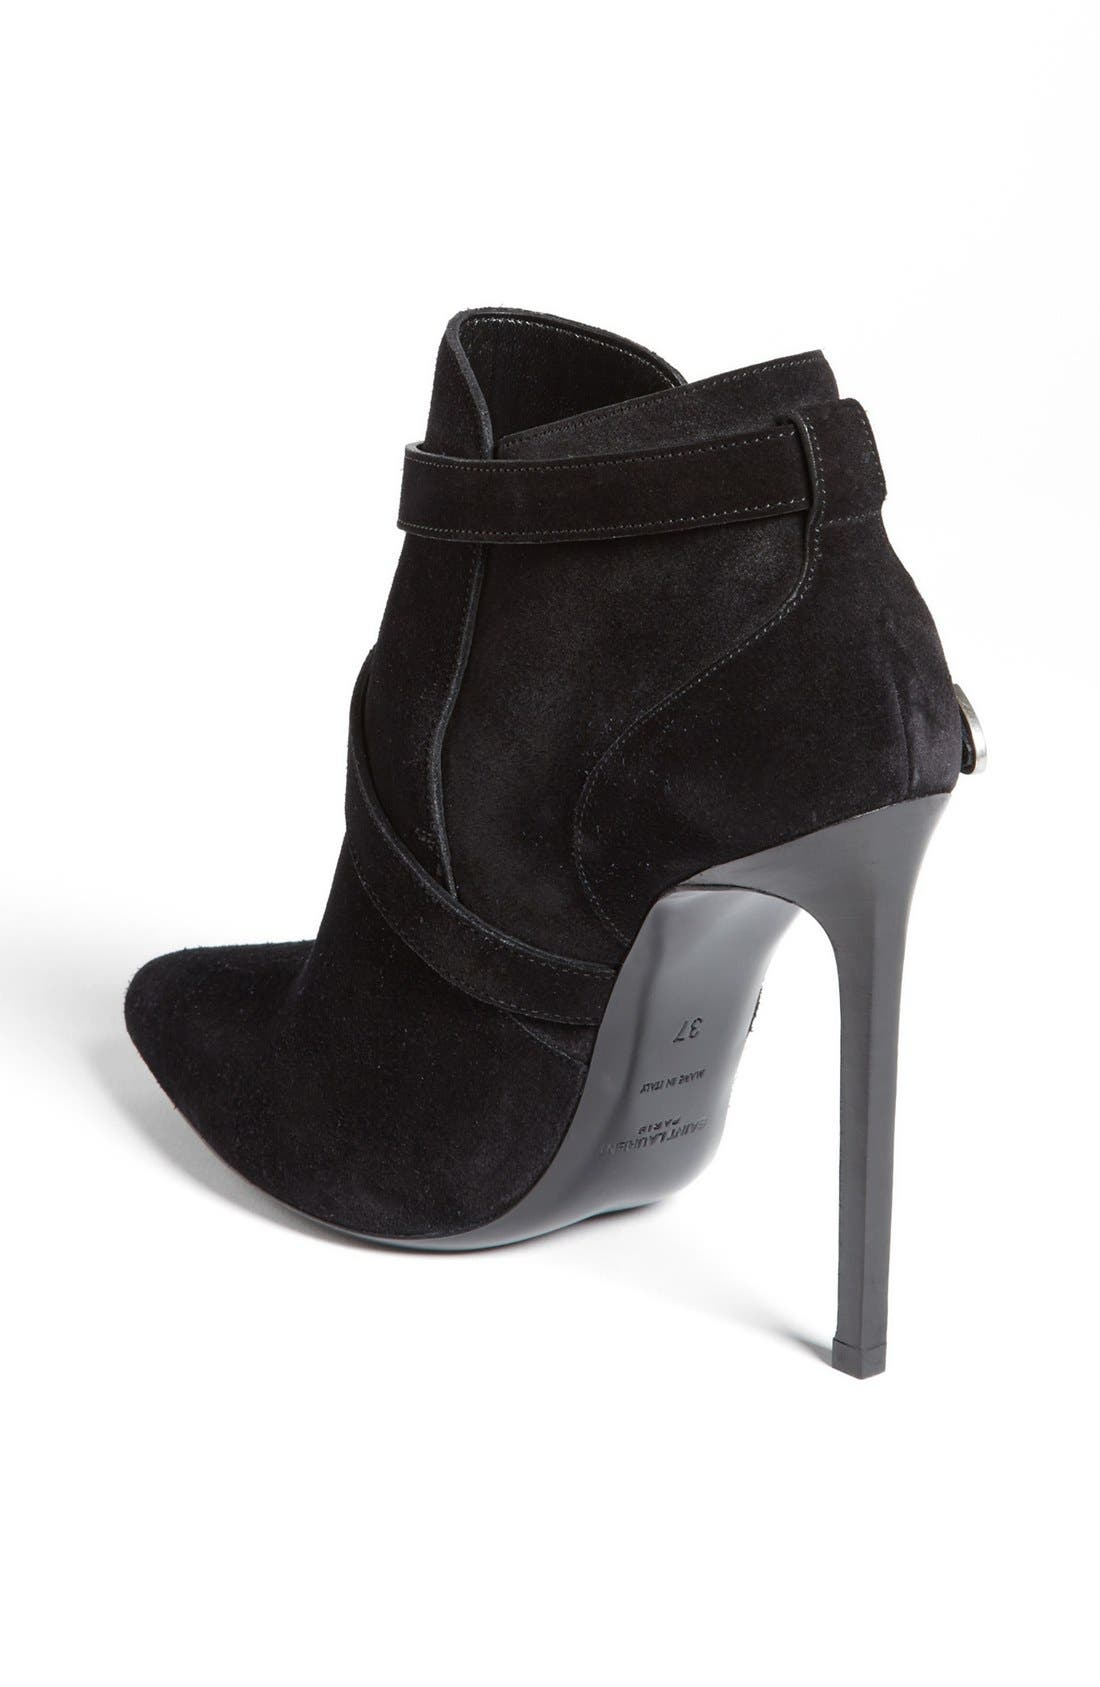 SAINT LAURENT,                             'Paris' Buckle Bootie,                             Alternate thumbnail 3, color,                             001